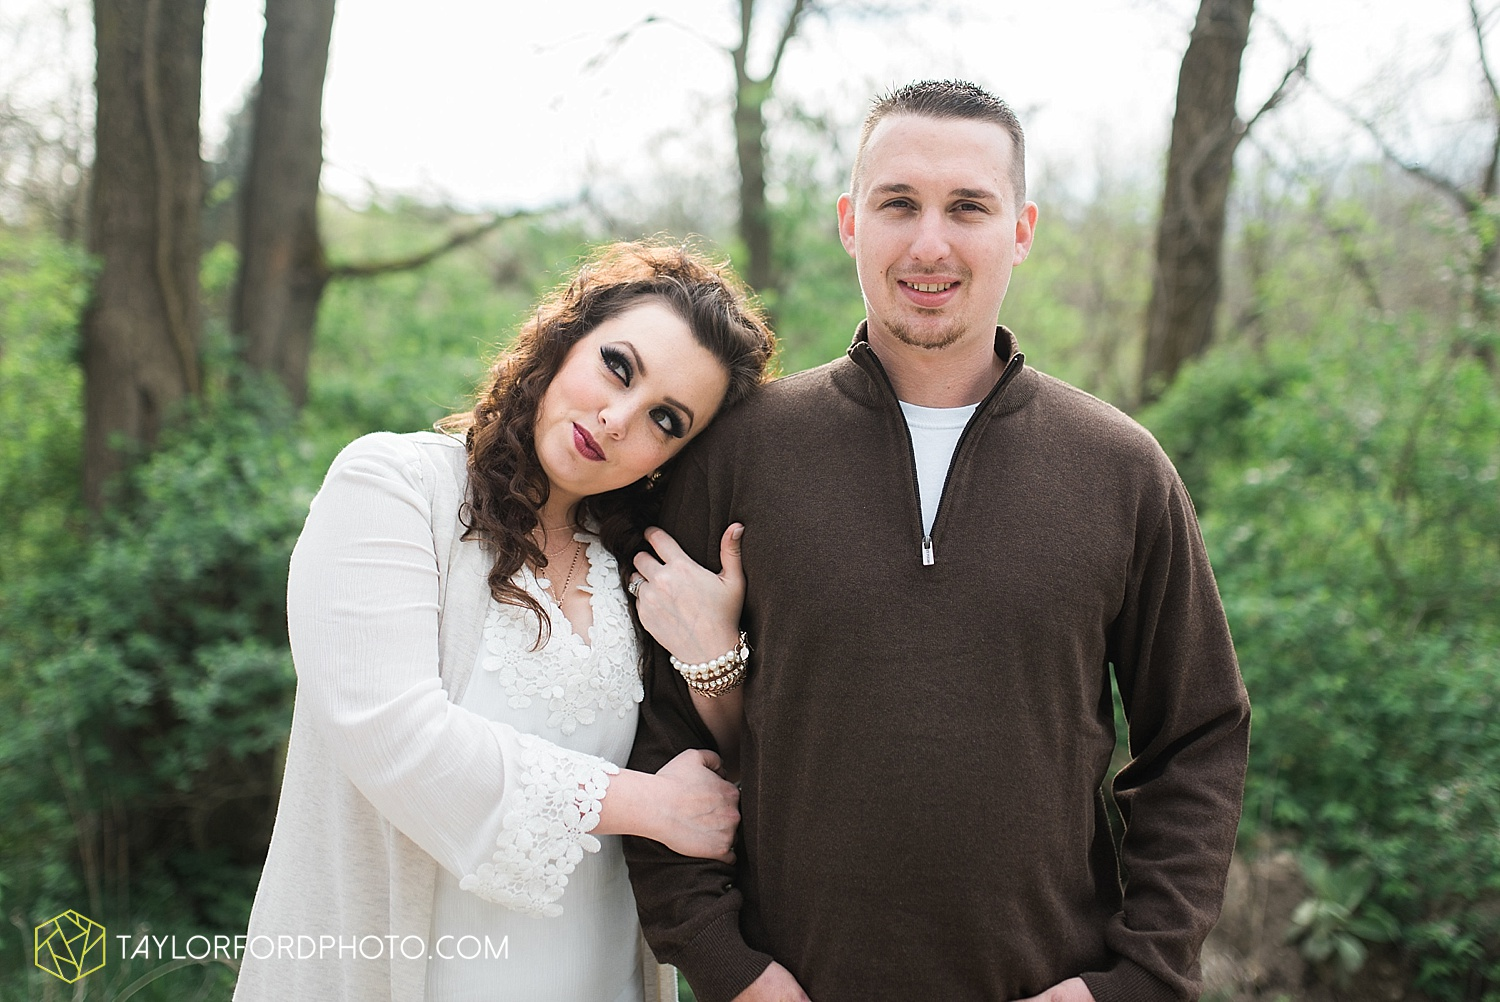 fort-wayne-indiana-engagement-wedding-photographer-taylor-ford-photography_1538.jpg